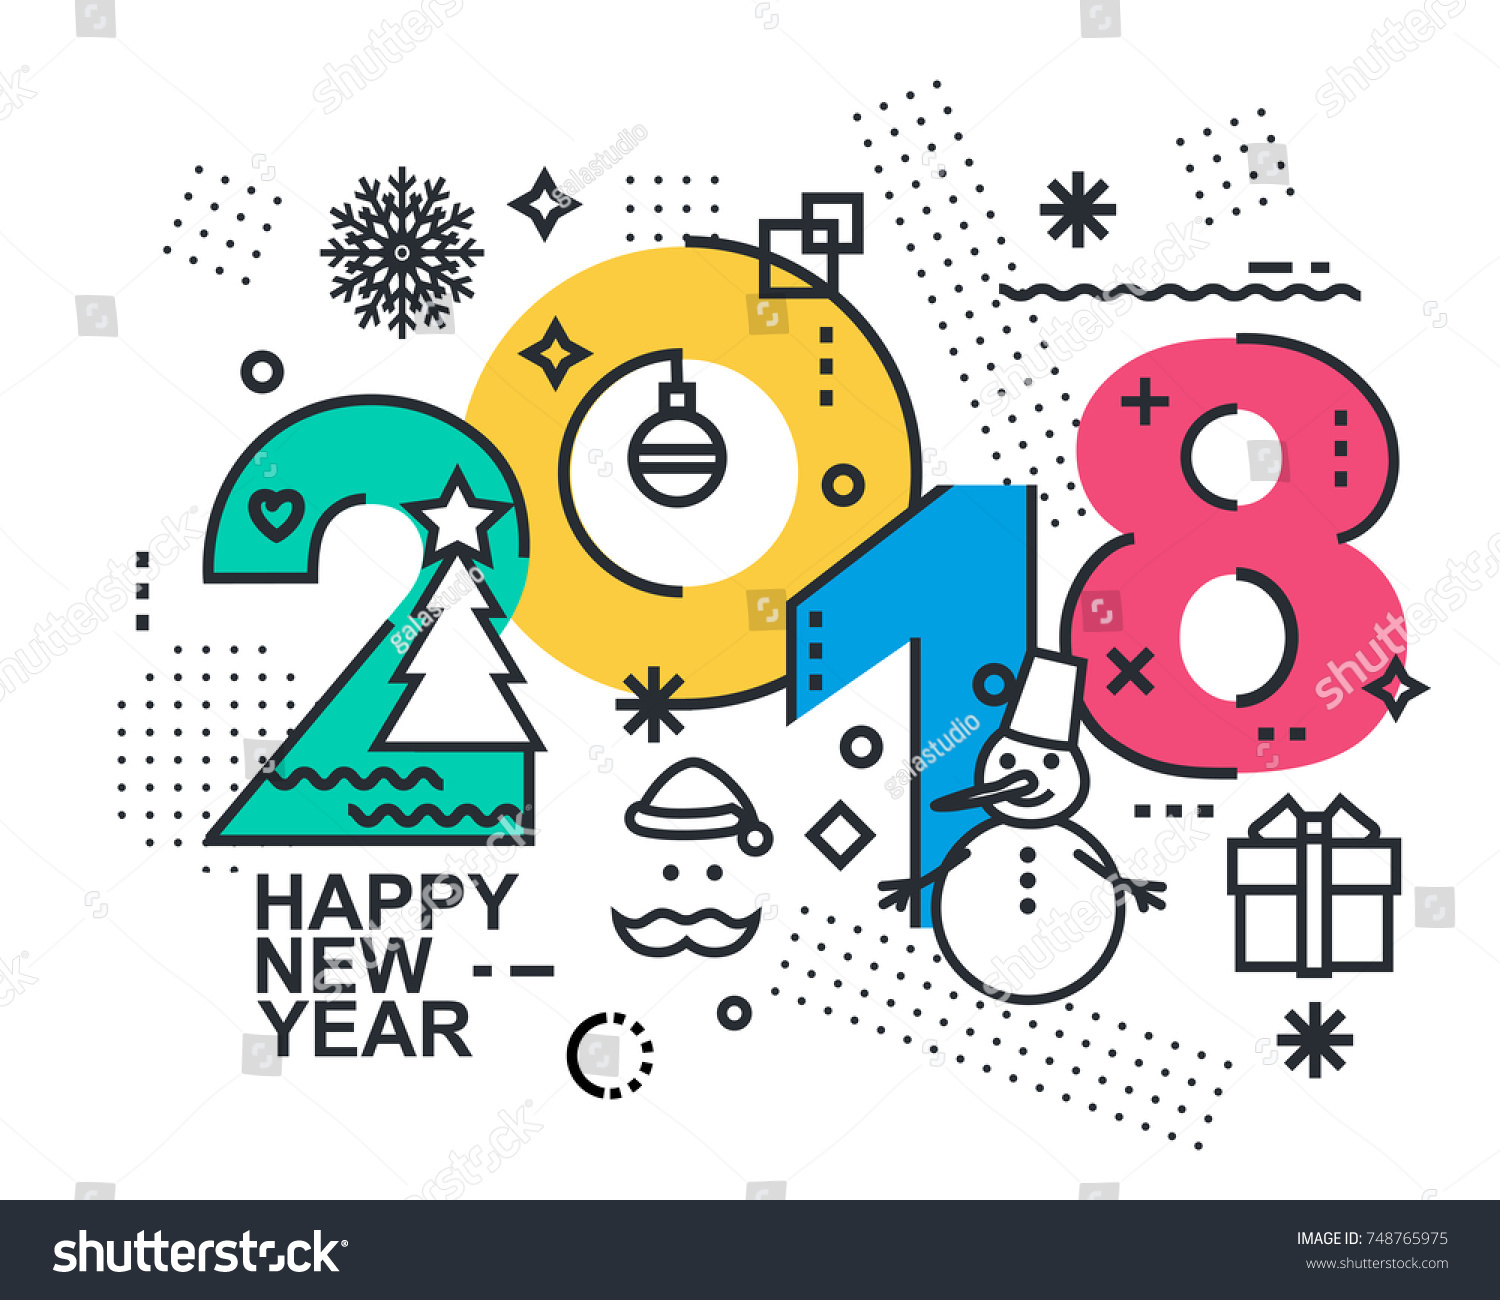 2018 happy new year trendy and minimalistic card or background modern thin contour line design